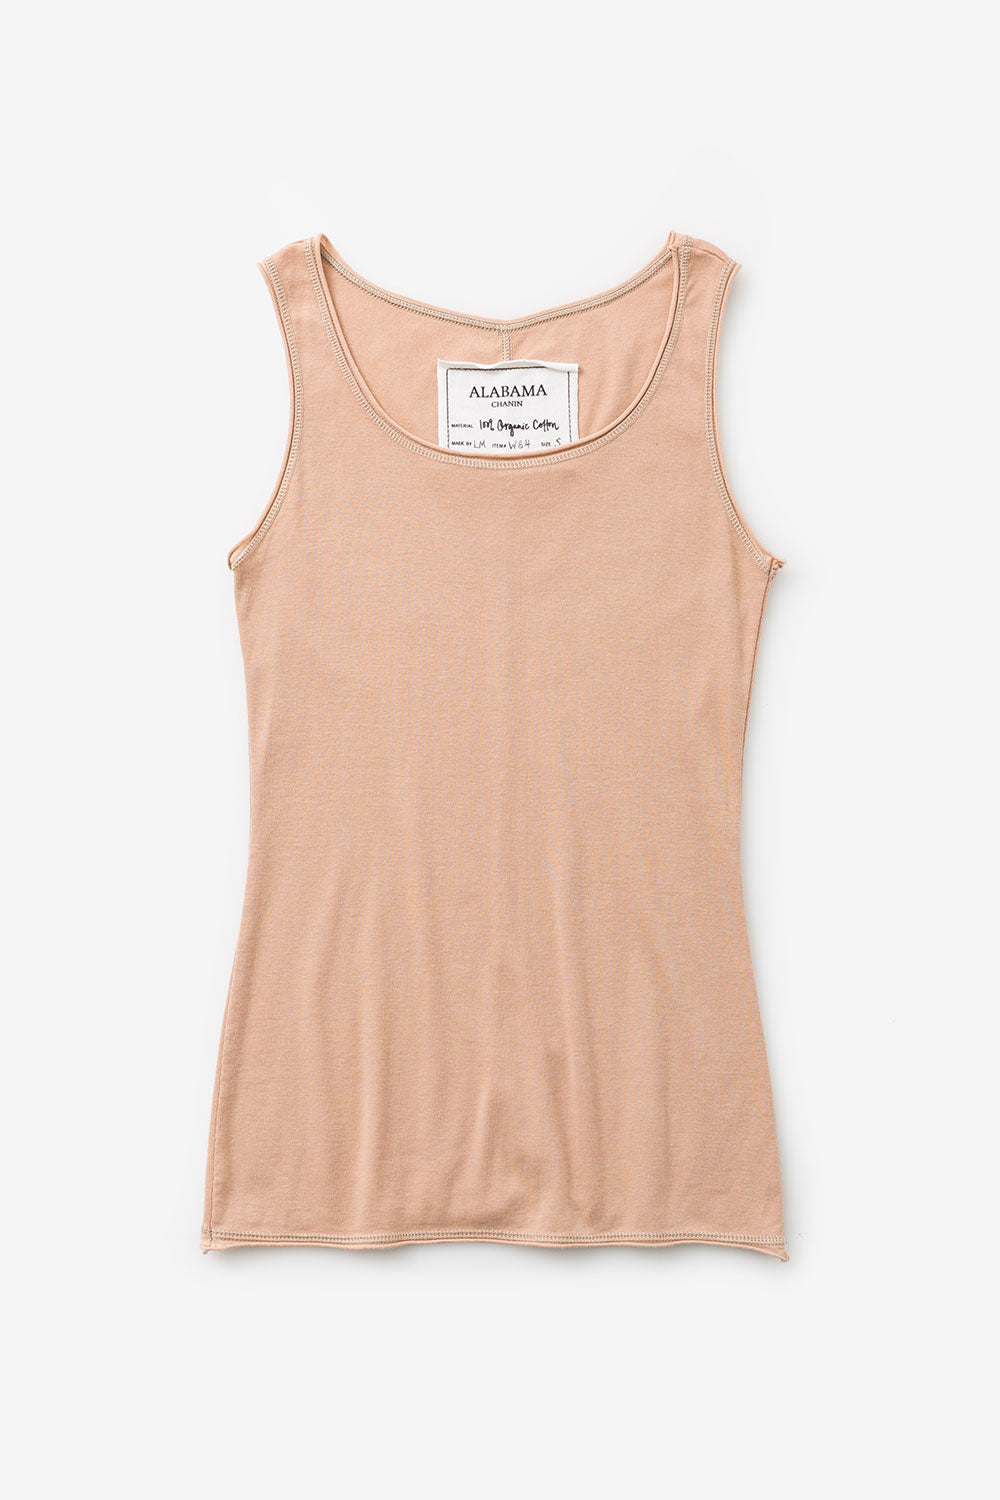 image of The Tank --- Soft Knit Rib